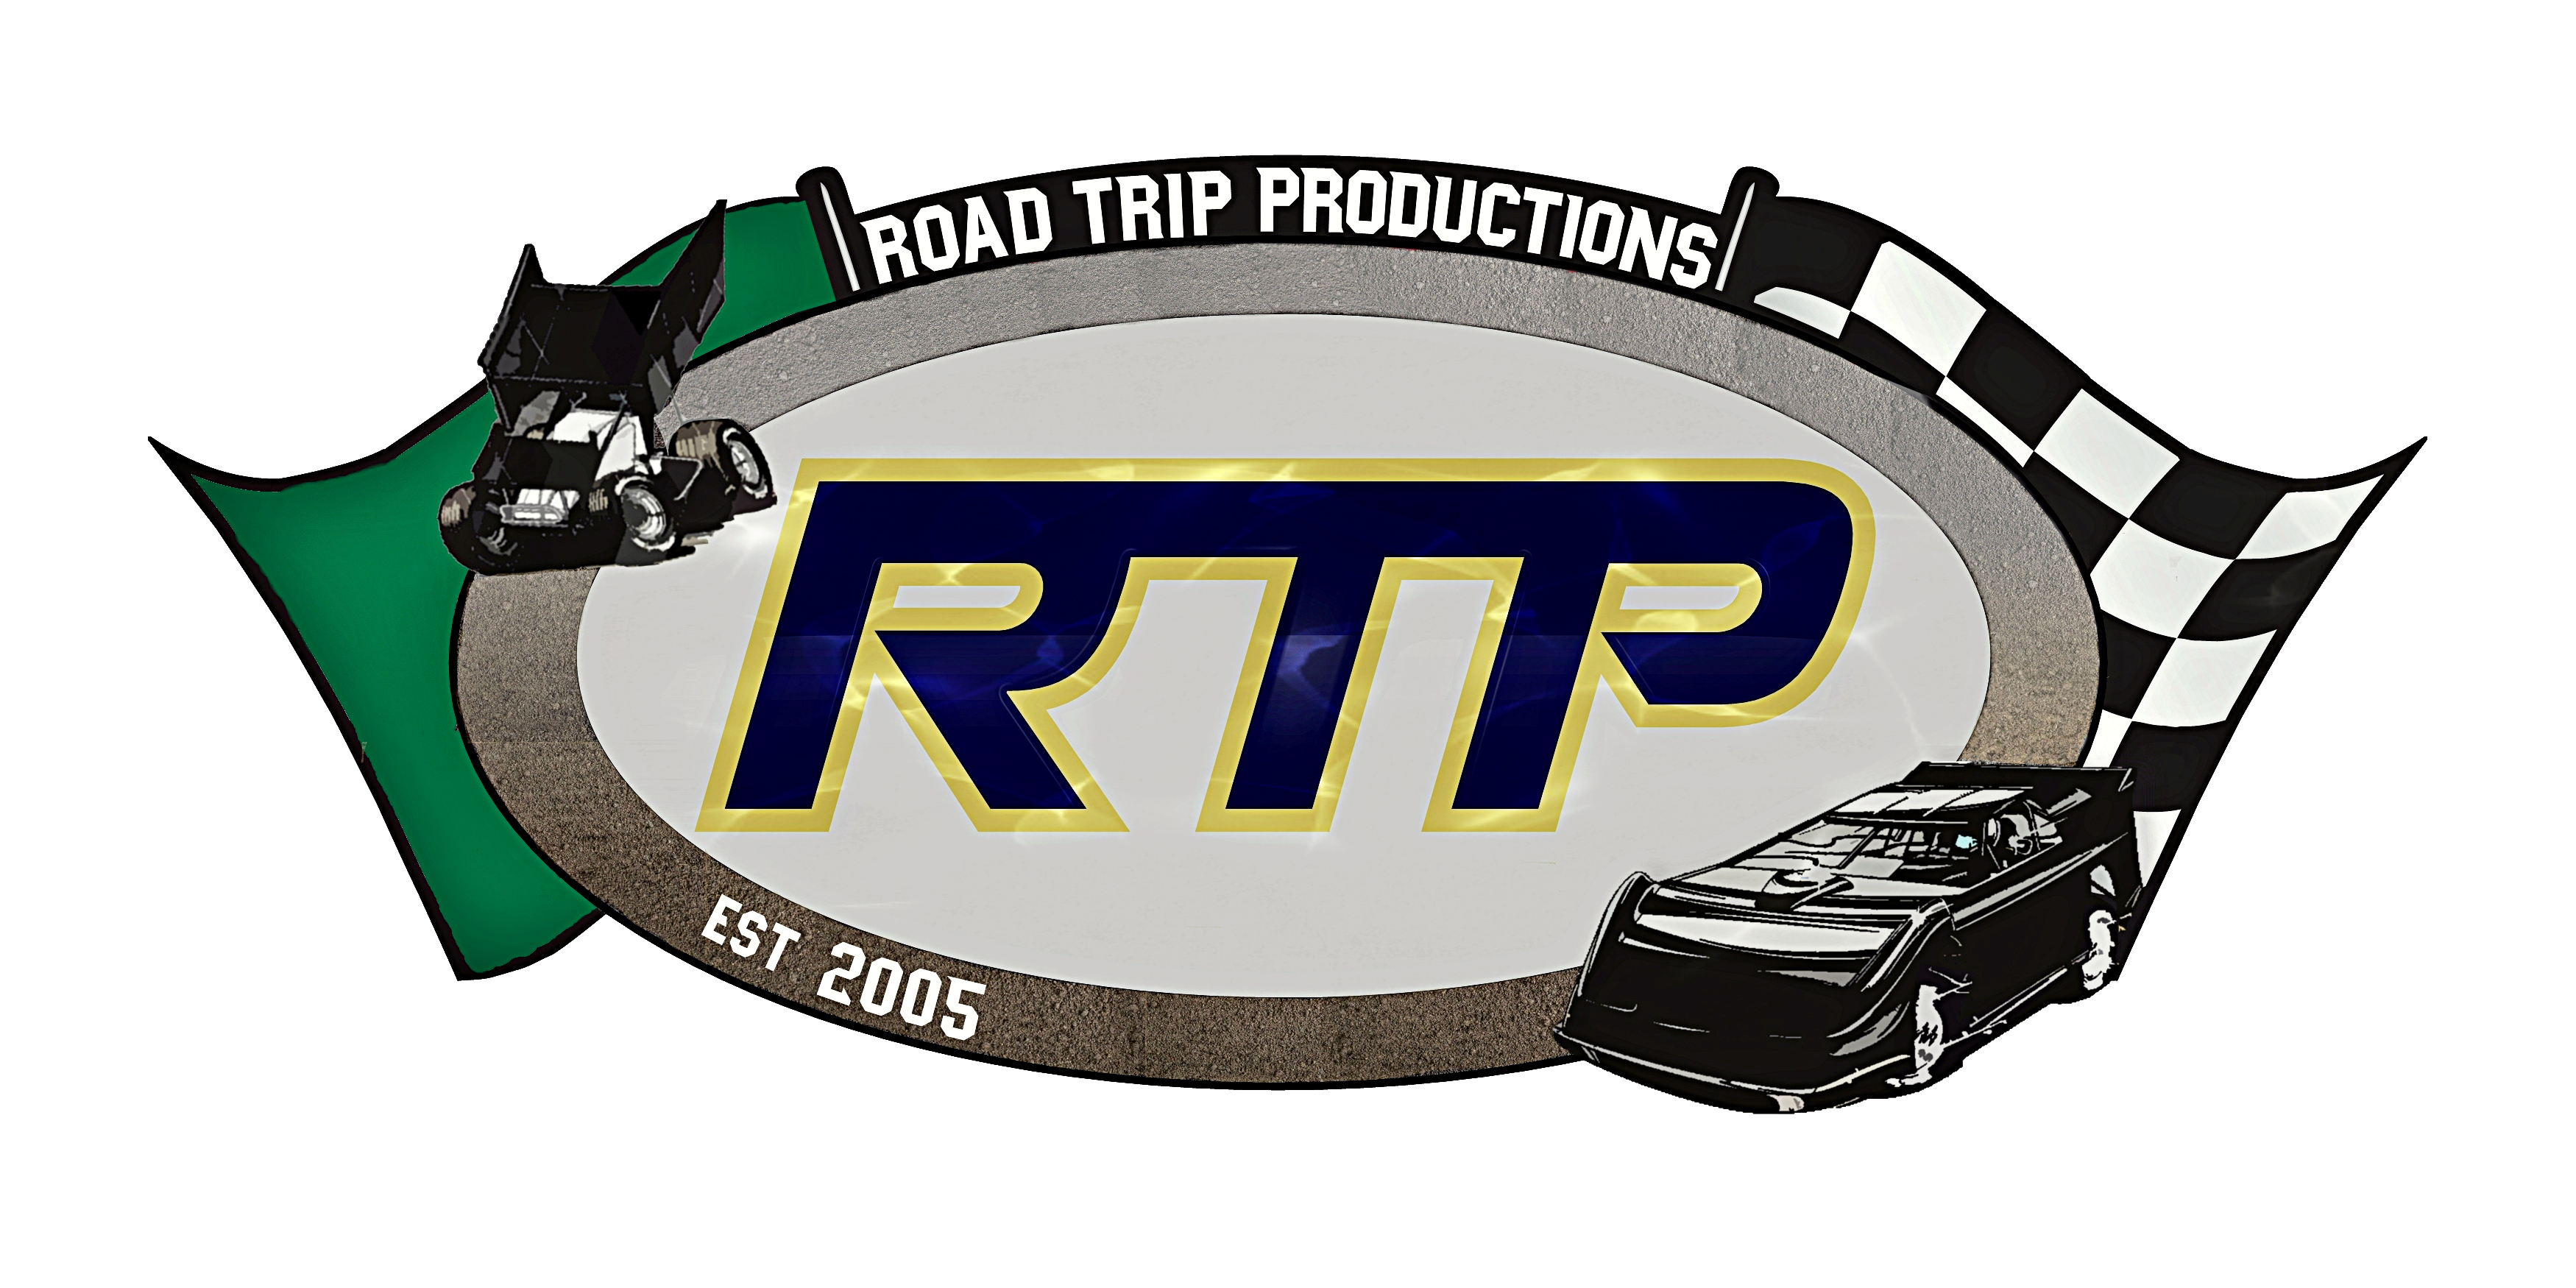 Multimedia road trip productions. Field clipart dirt field